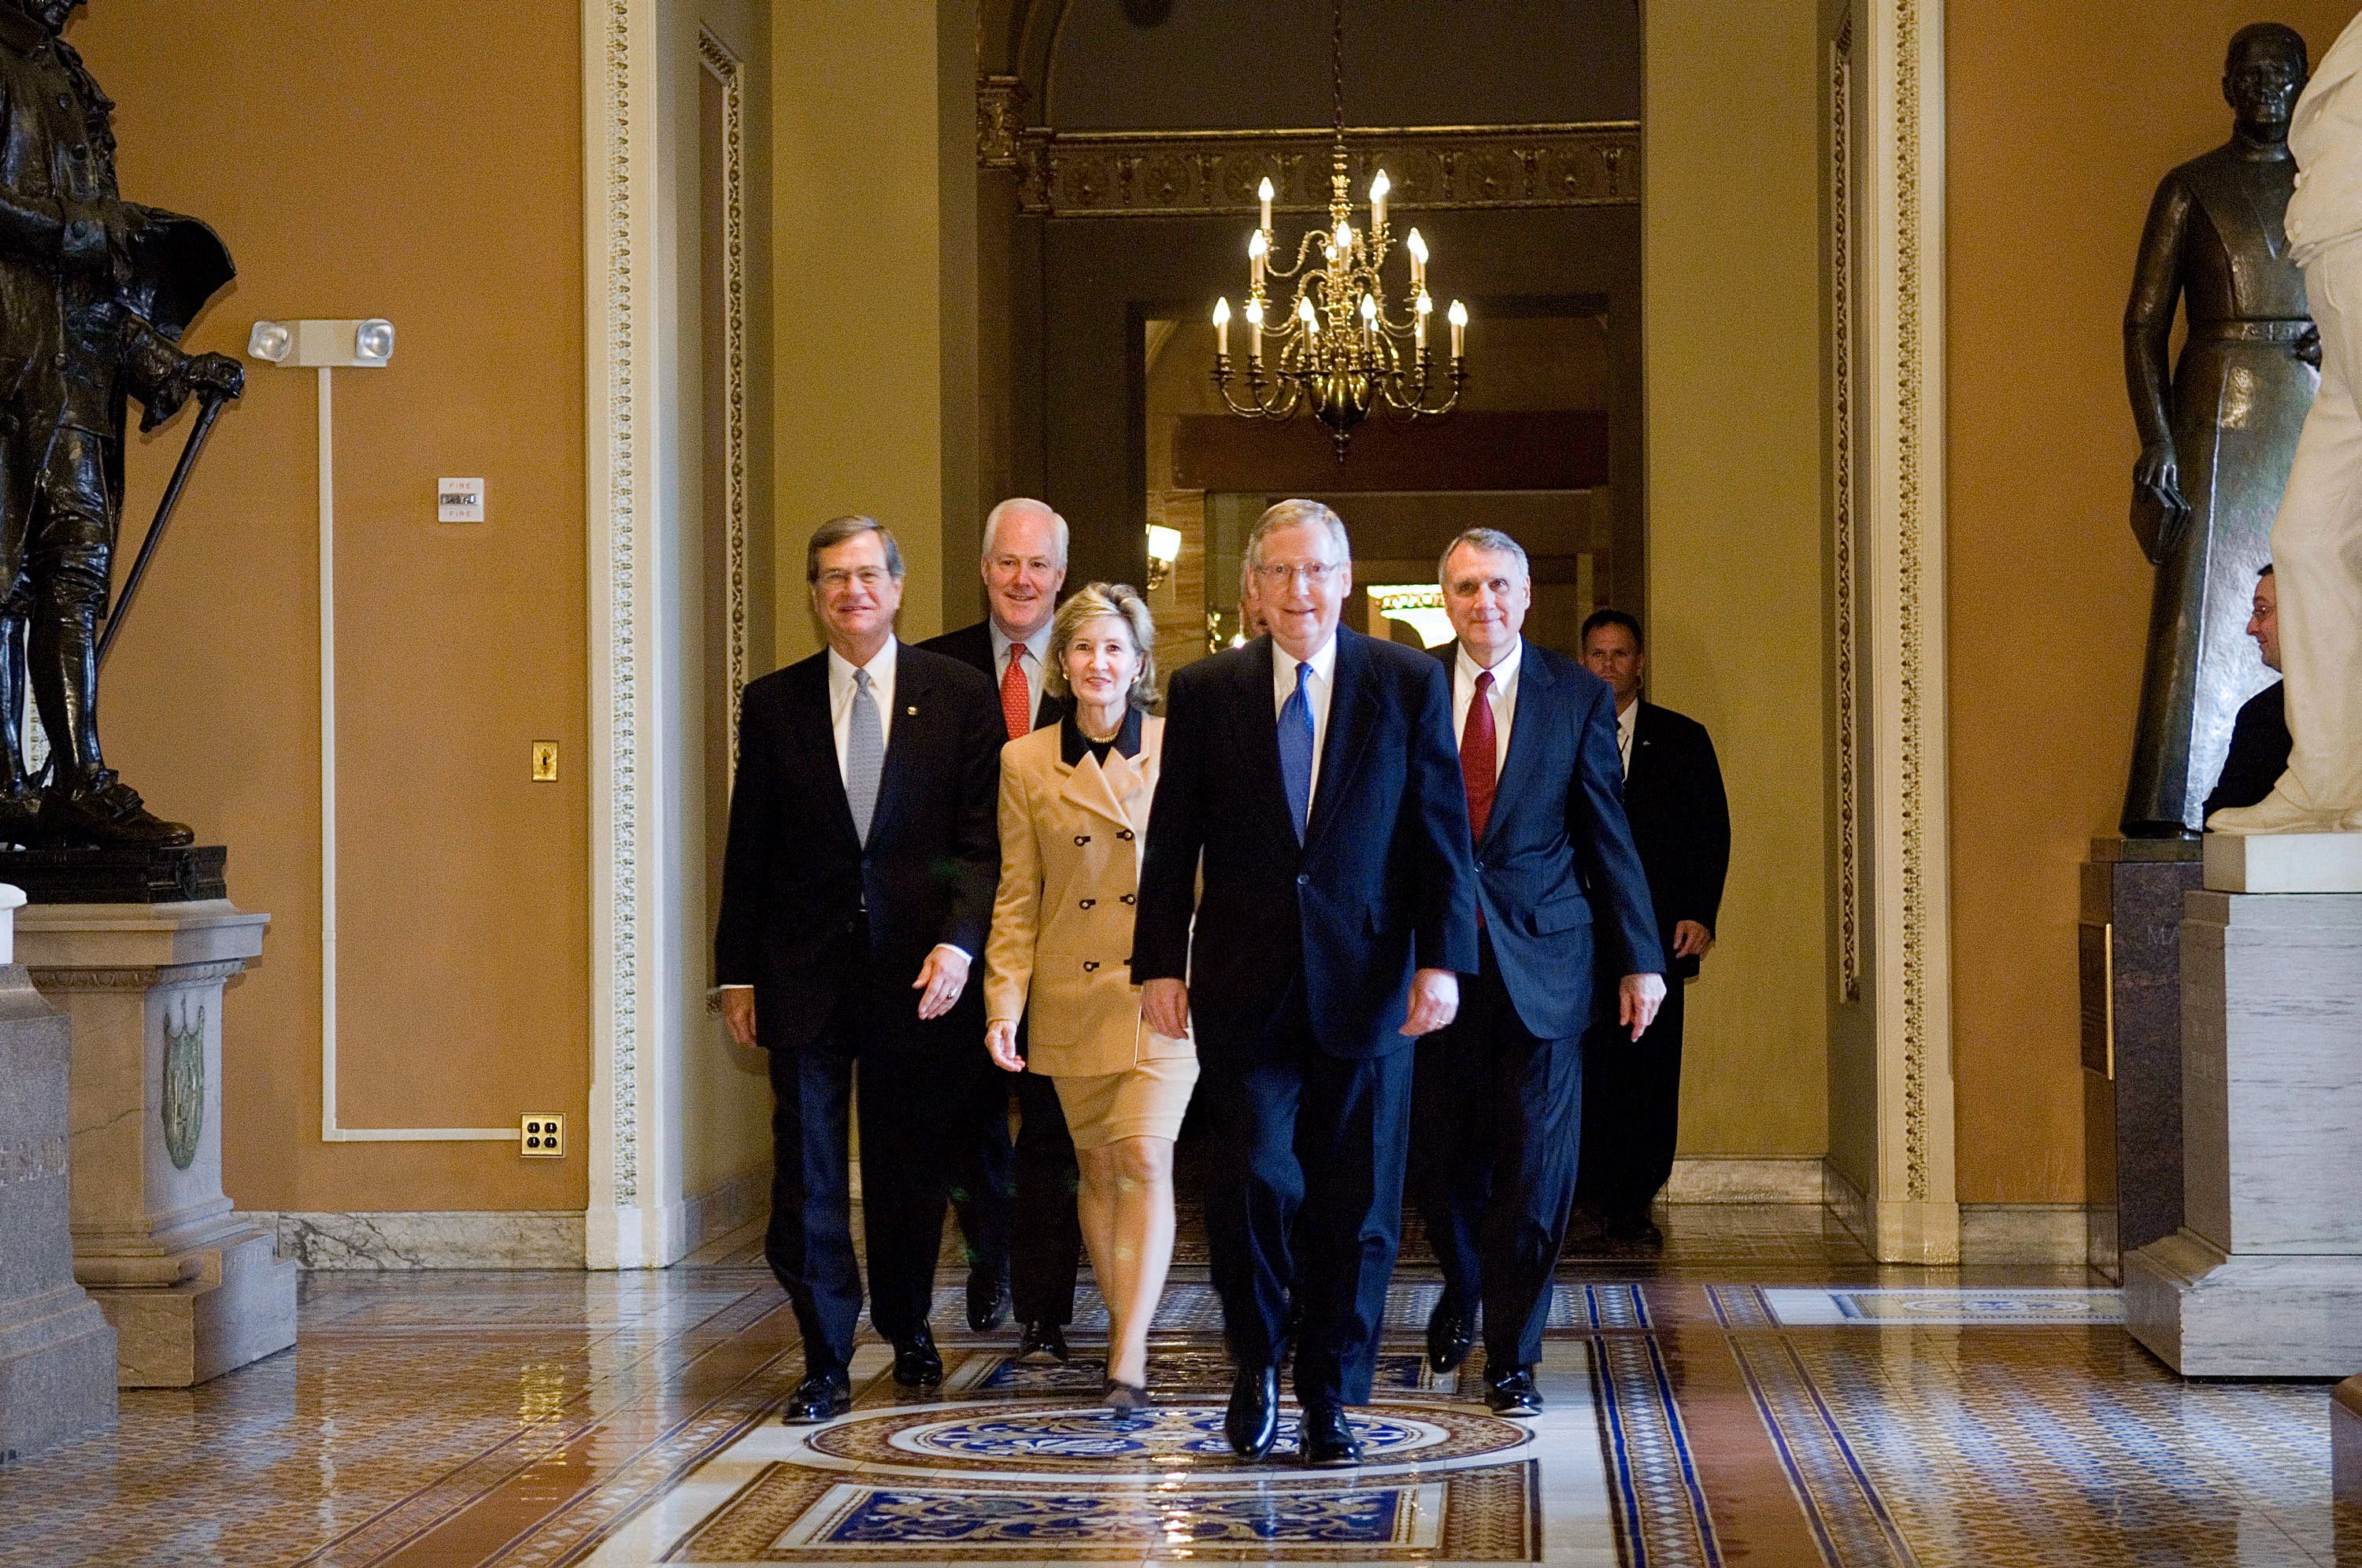 """UNITED STATES - NOVEMBER 15:  Senators elected by colleagues to serve as leadership for Republicans in the 110th Congress, which commences in January 2007, emerge from their caucus meeting at the U.S. Capitol. Left to right: Senate Minority Whip Sen. Trent Lott, R-Miss., the No. 2 minority leadership post; Vice Chairman of the Republican Conference John Cornyn, R-Texas; Republican Policy Committee Chair Kay Bailey Hutchison, R-Texas; Senate Minority Leader Mitch McConnell, R-Ky., and Republican Conference Chairman Jon Kyl, R-Ariz; and (not pictured) National Republican Senatorial Committee Chairman John Ensign, R-Nev. Senate Republicans proved on Wednesday that there can indeed be second acts in politics, electing their former leader Trent Lott of Mississippi to the No. 2 minority leadership post for the 110th Congress. Lott prevailed over Lamar Alexander, R-Tenn., by a single vote in a race he jumped into only this week, after the Nov. 7 elections gave Democrats control of the Senate by a 51-49 margin. Alexander began lining up support nearly a year ago. Lott, 65, will serve as GOP whip under newly anointed Minority Leader Mitch McConnell, R-Ky., who was unopposed in his bid to succeed retiring Majority Leader Bill Frist, R-Tenn. McConnell has served as whip for the past four years. """"It was just a choice of two styles and two sets of experience,"""" Alexander said. """"Senators, like most Americans, like a comeback.""""  (Photo by Scott J. Ferrell/Congressional Quarterly/Getty Images)"""